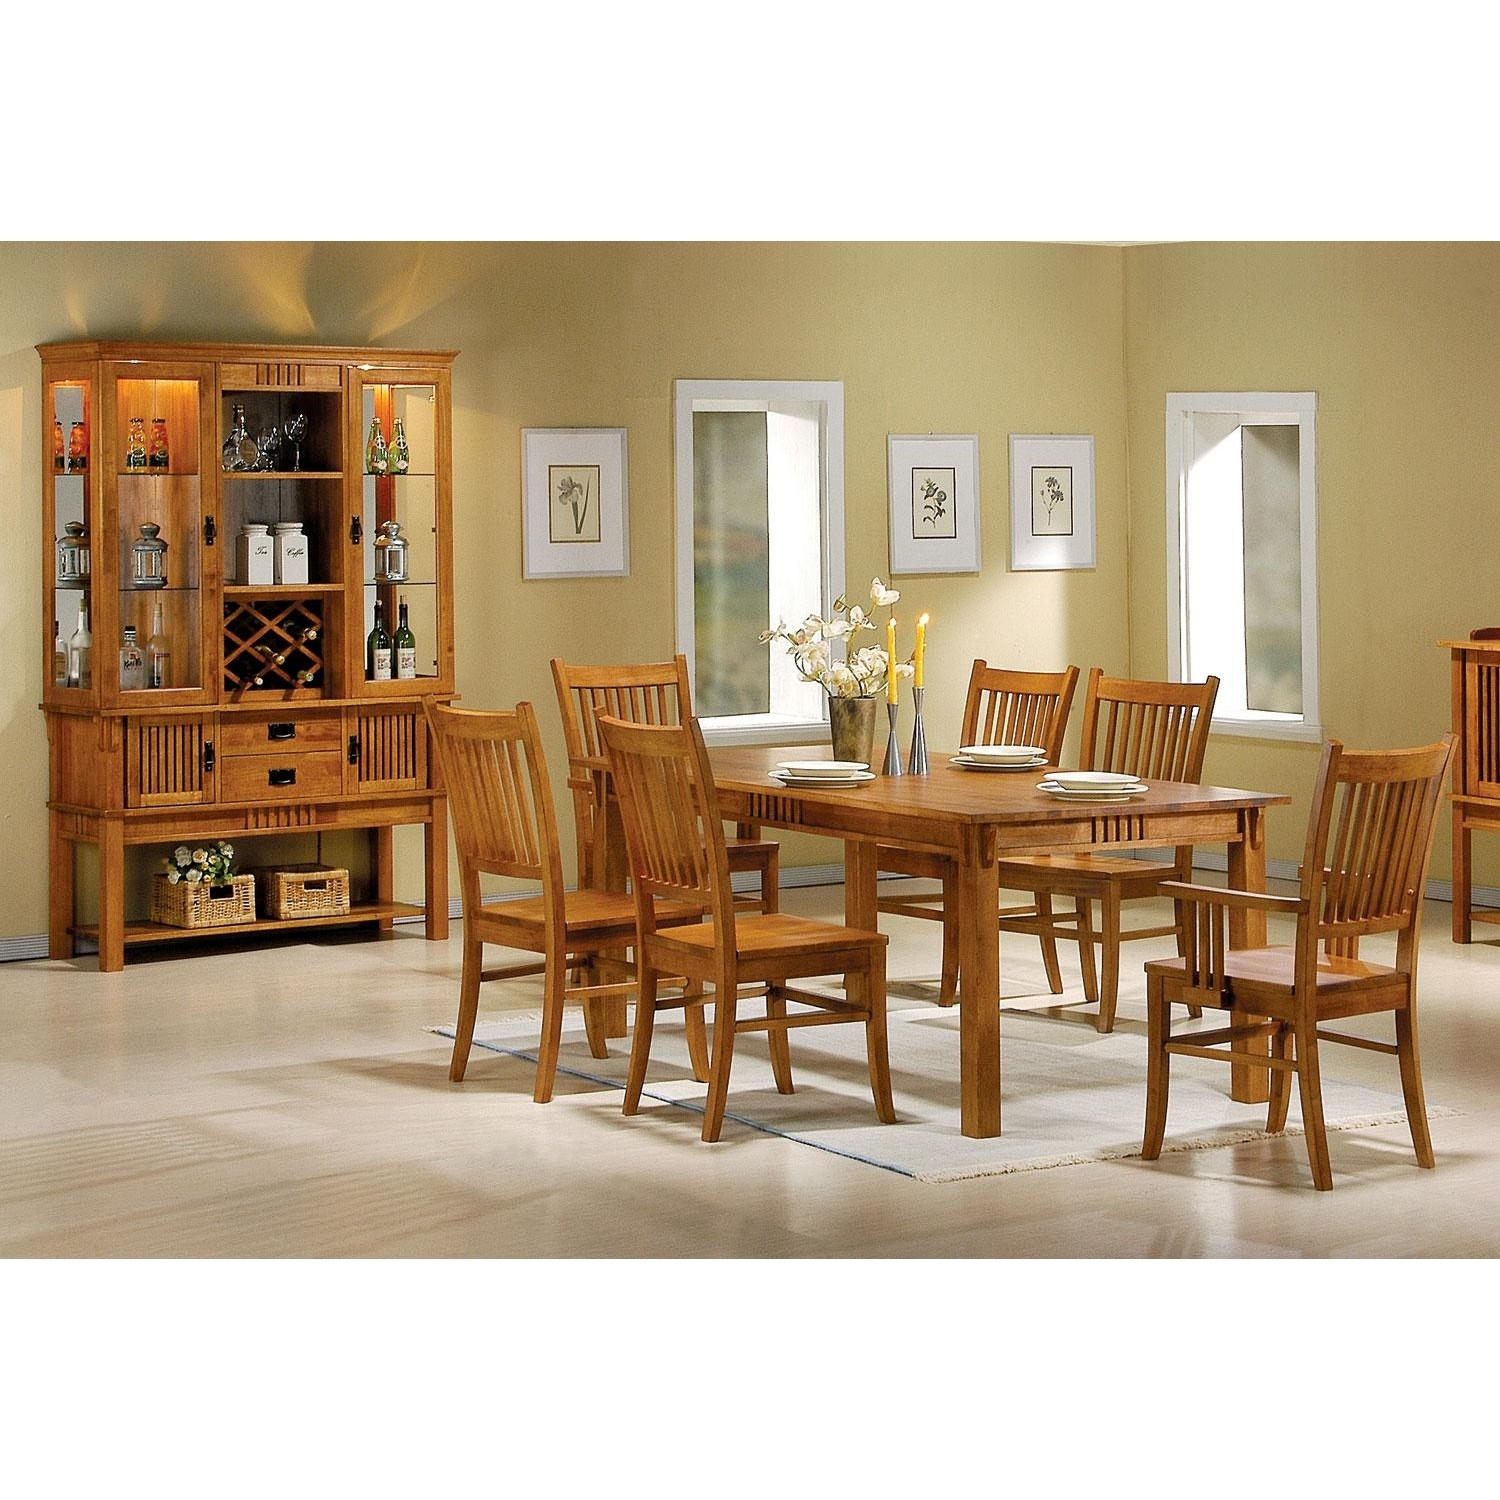 Coaster 100621 Mission Style Dining Table Burnished Oak Solid Hardwood & Mission Oak Dining Room Chair - Foter